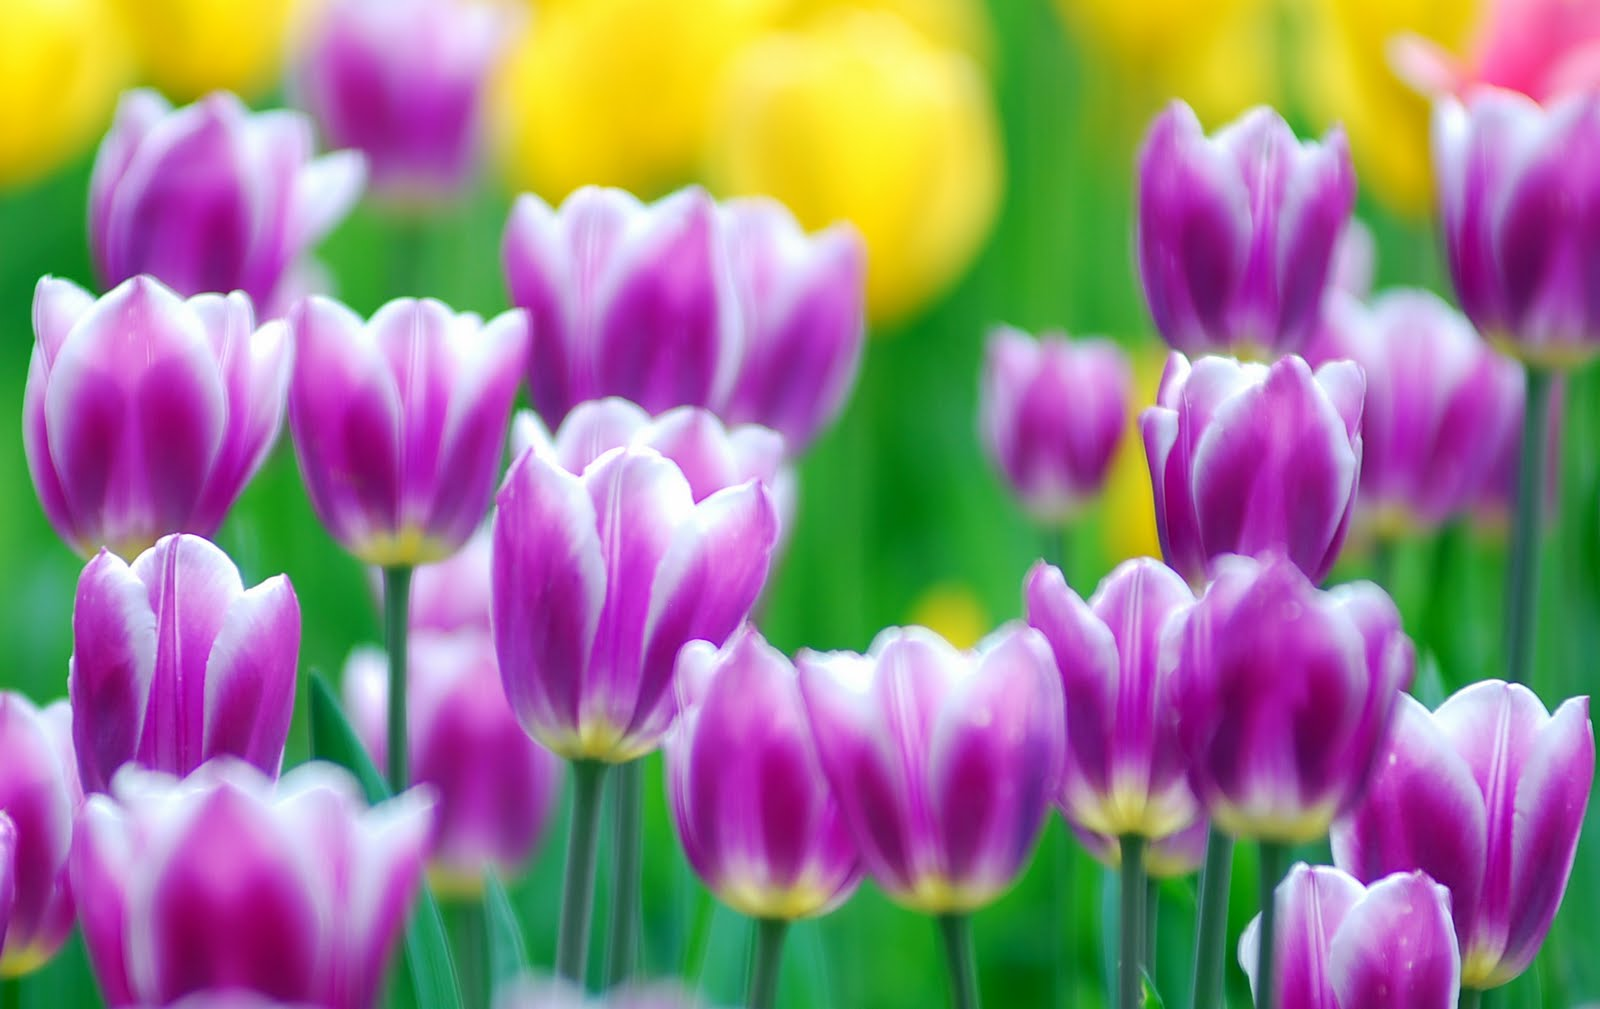 Tulips flowers wallpapers tulips images tulips pictures Beautiful flowers images